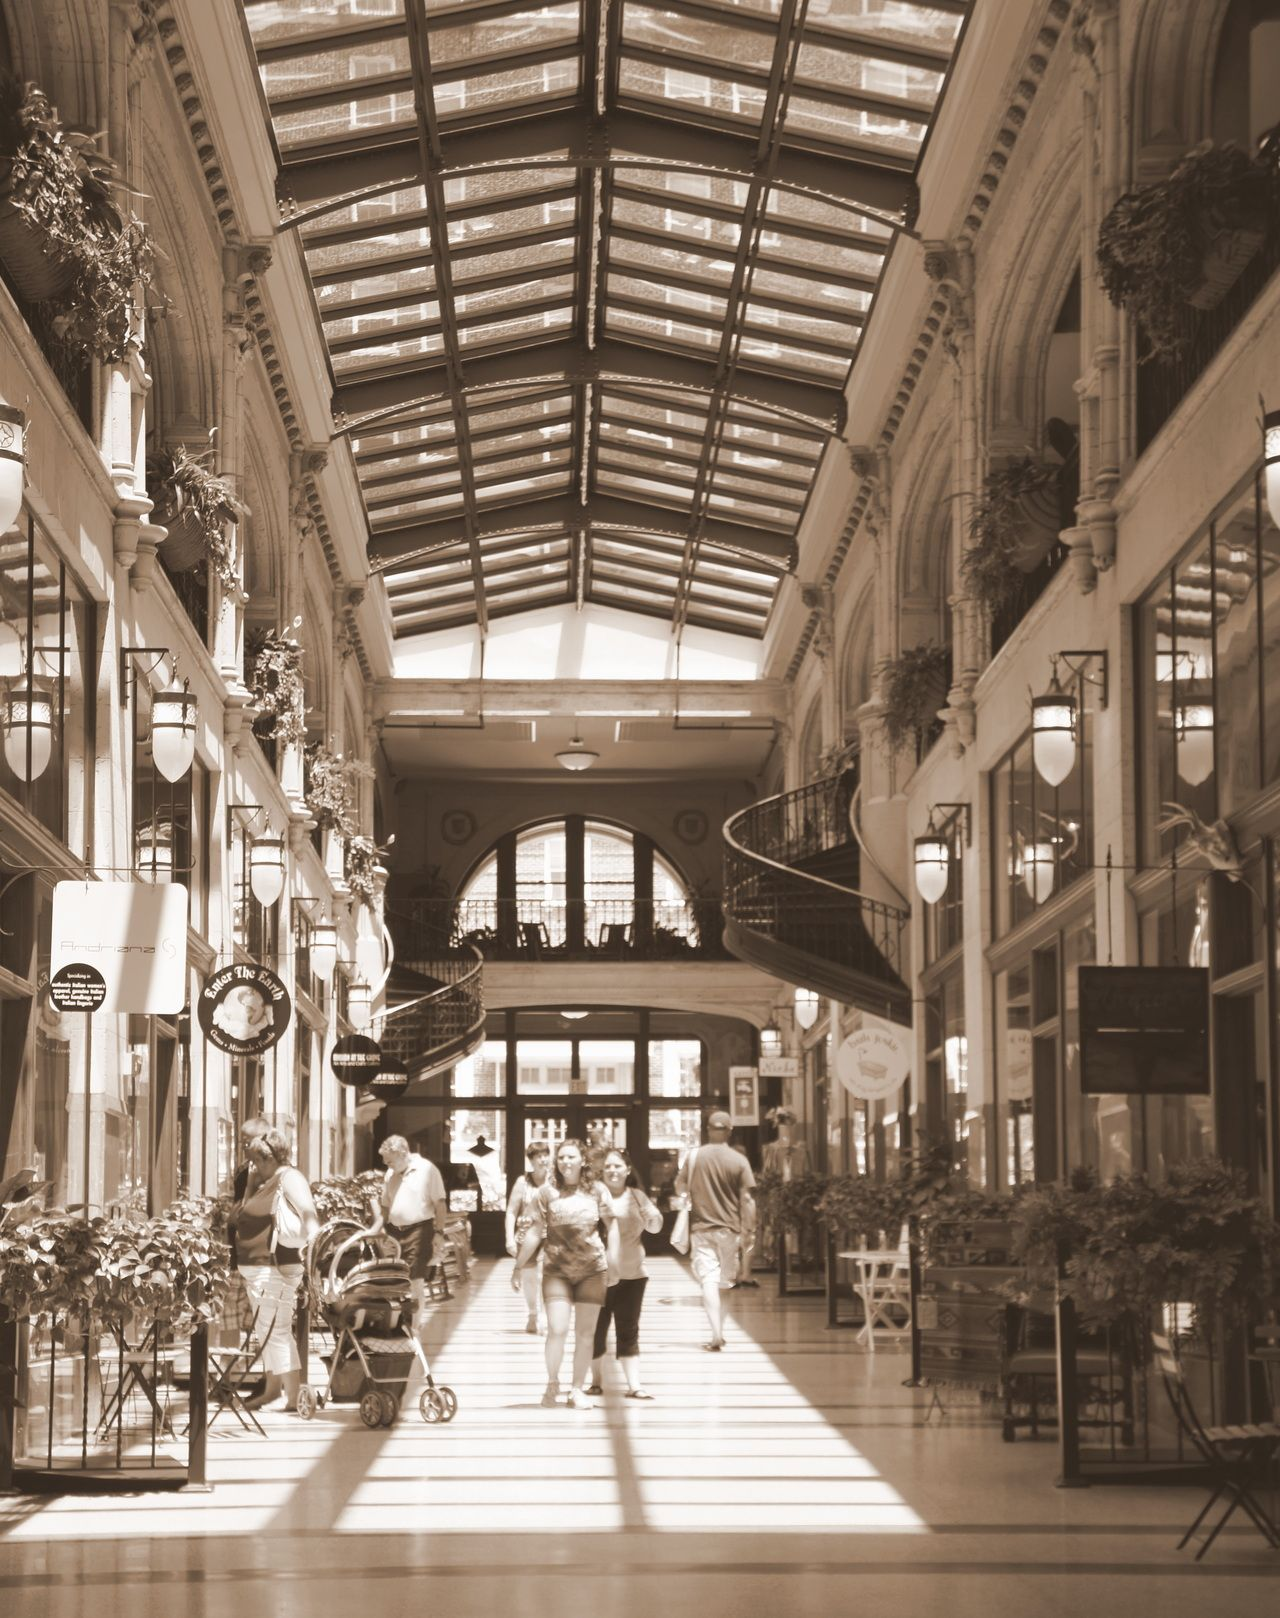 Grove Park Arcade, Asheville, NC.  This is a beautifully restored 1920's era arcade used today as a shopping mall.